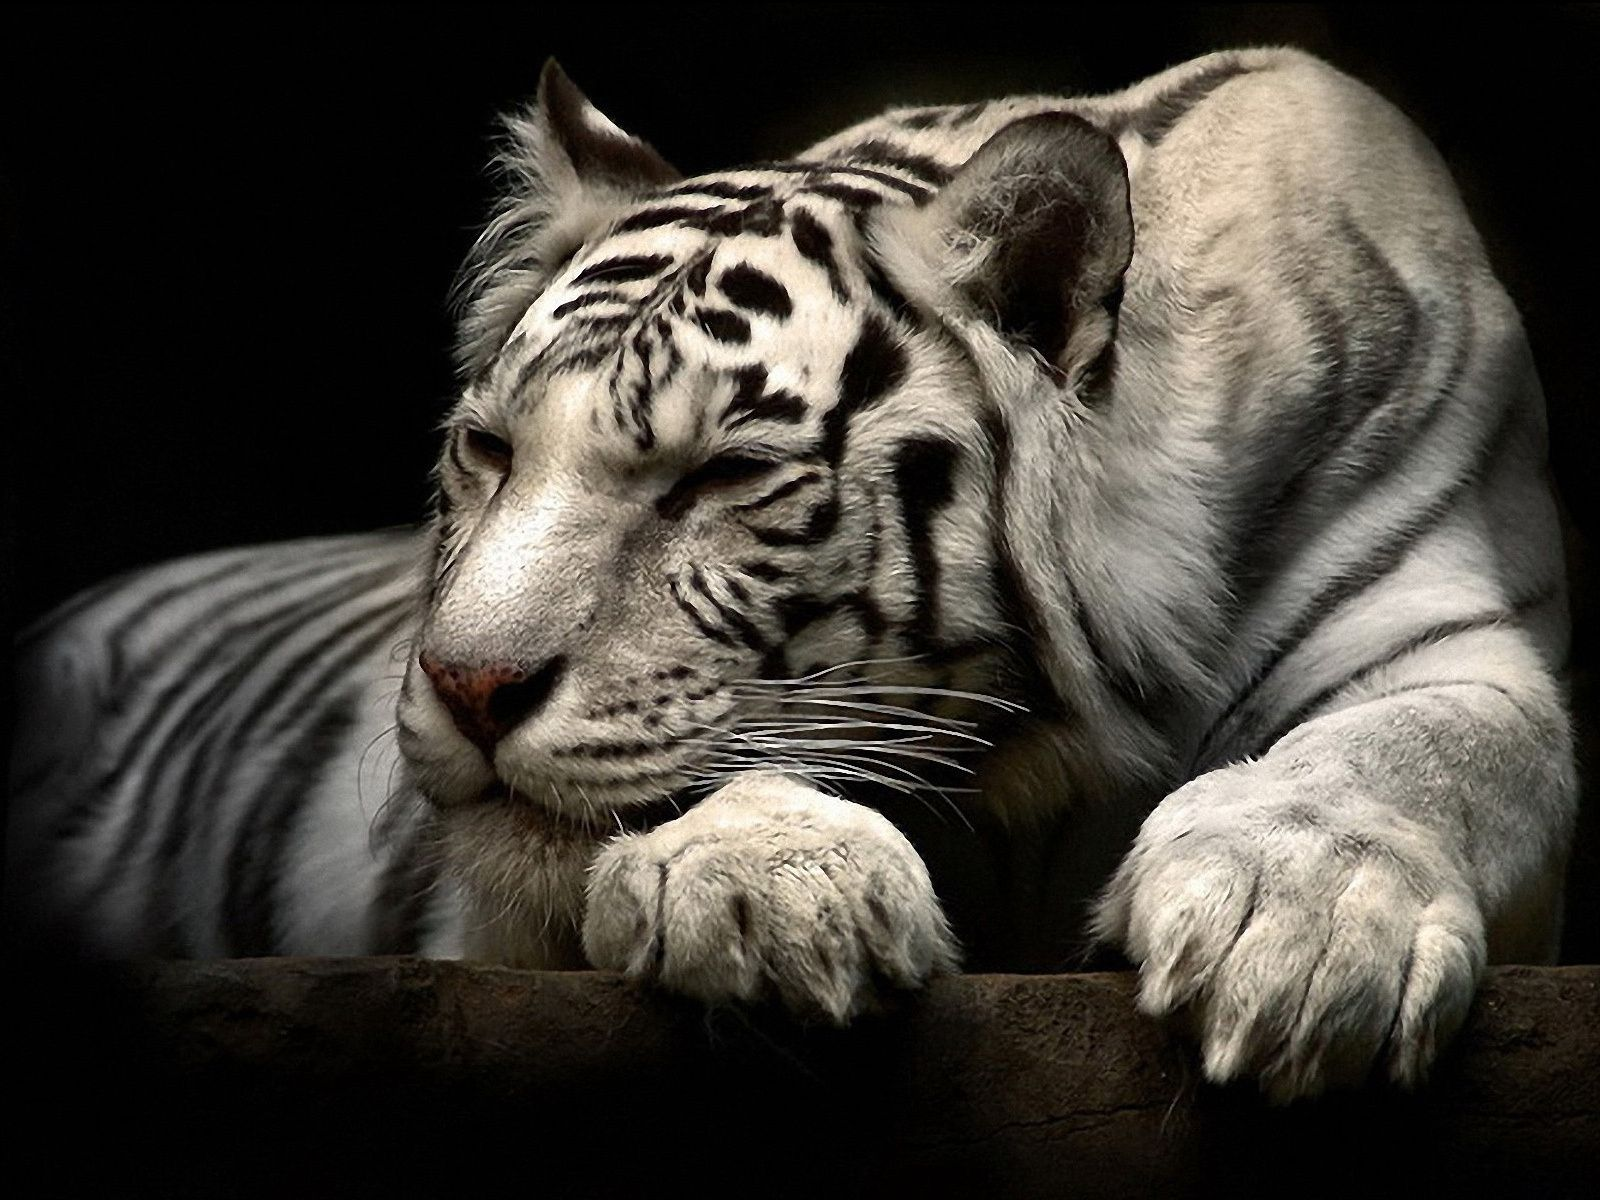 coolest pictures ever | hd wallpapers: best ever white tiger hd